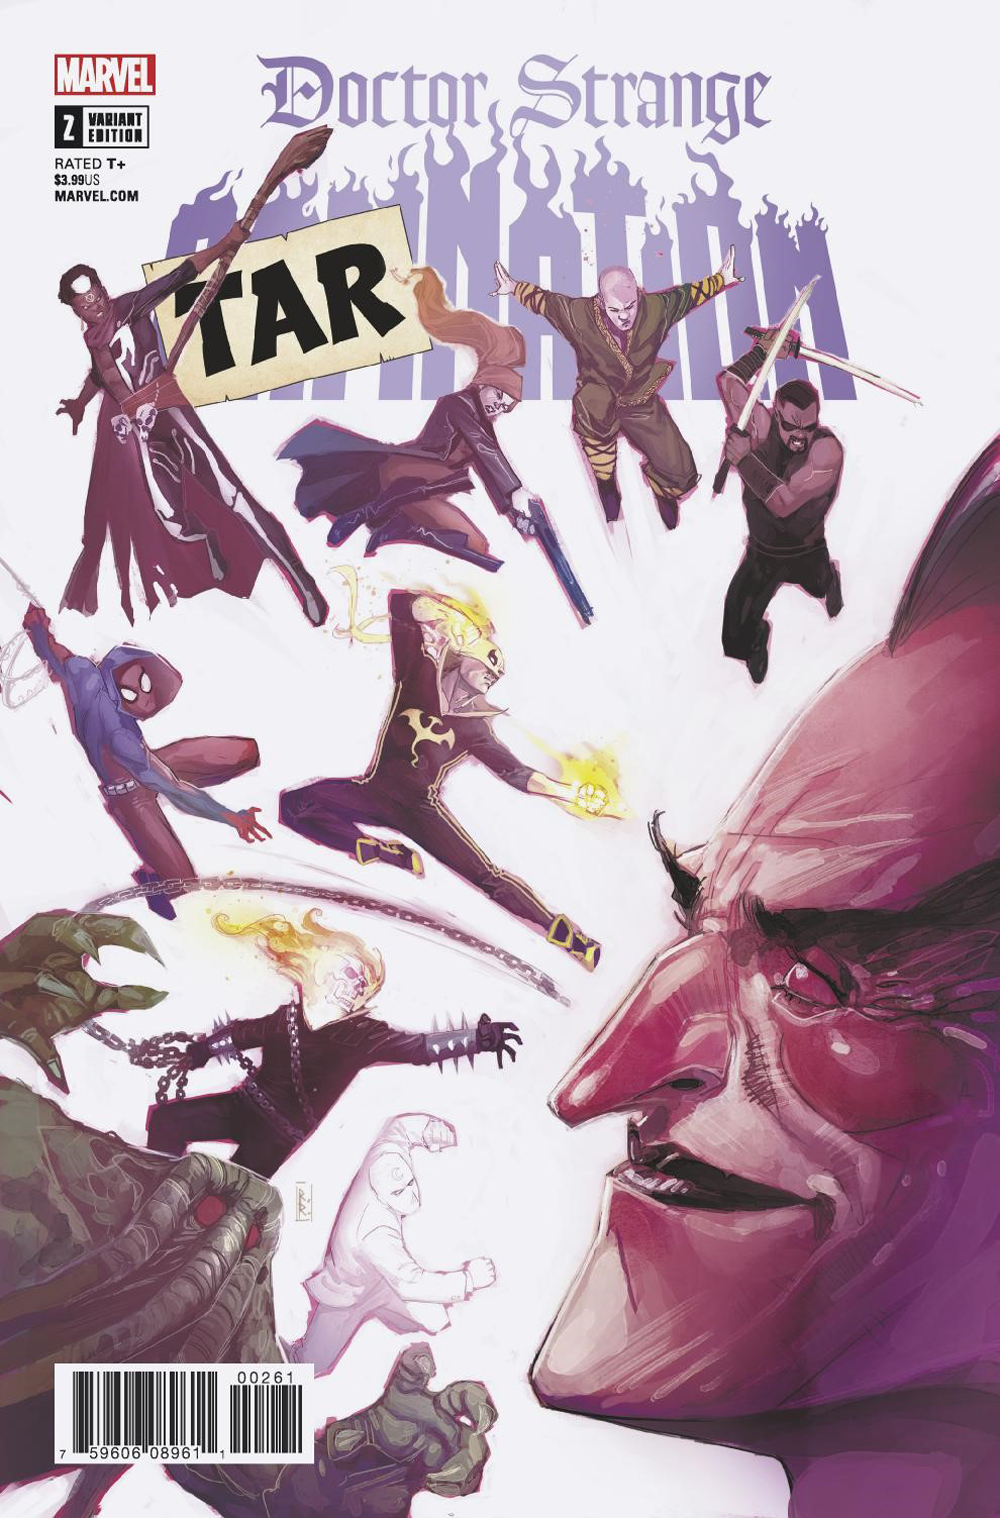 DOCTOR STRANGE DAMNATION #2 (OF 4) TARNATION VAR LEG